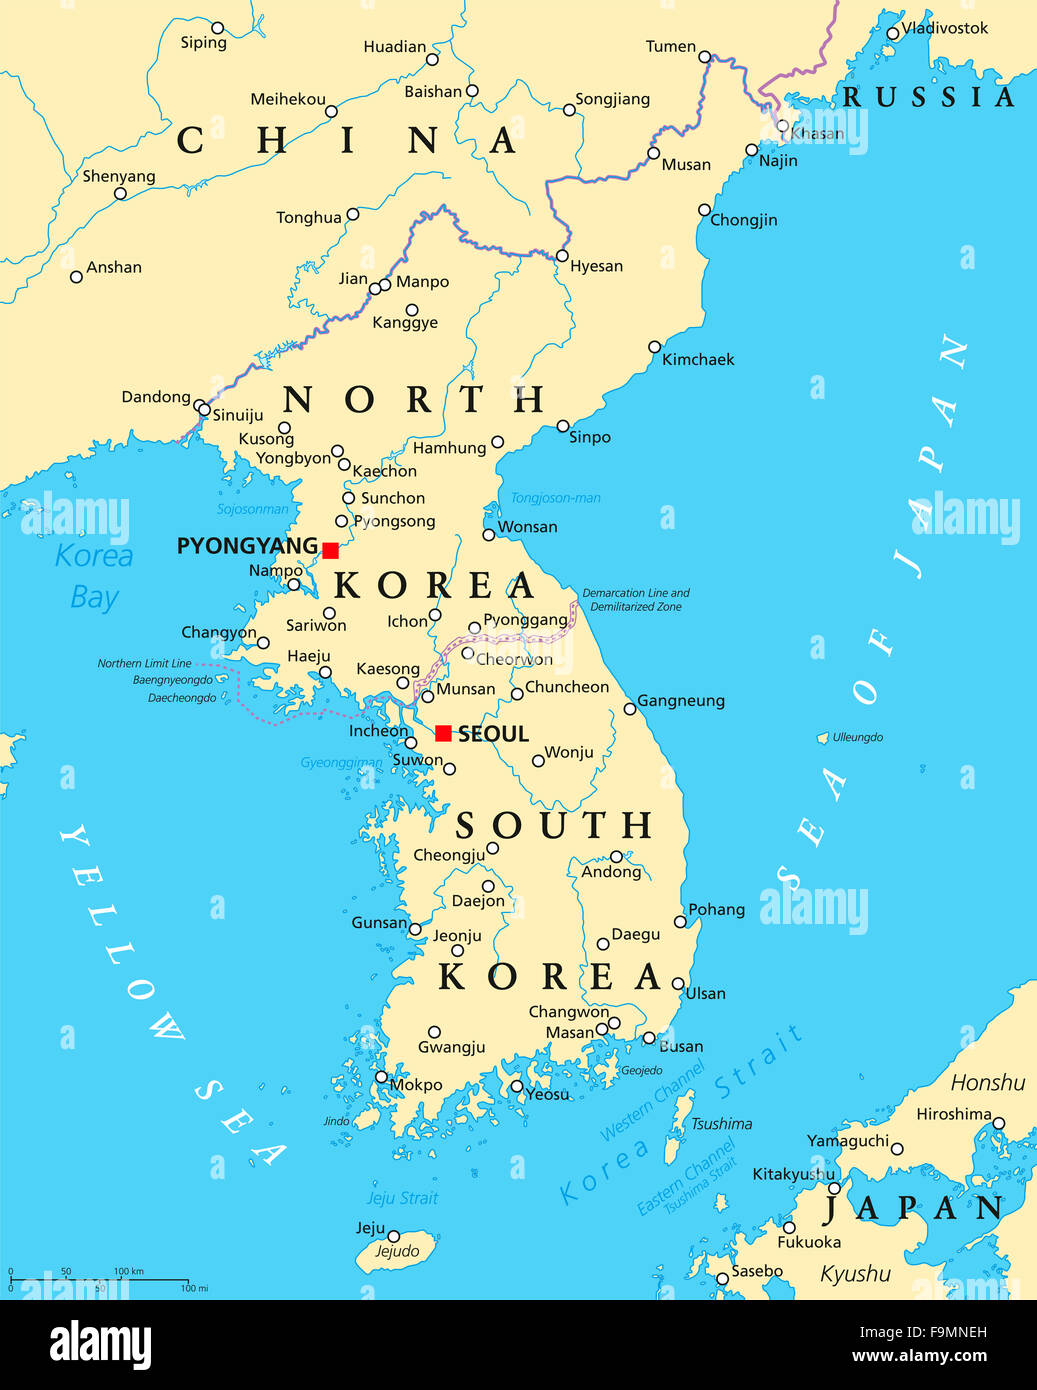 Korean peninsula political map with North and South Korea and the